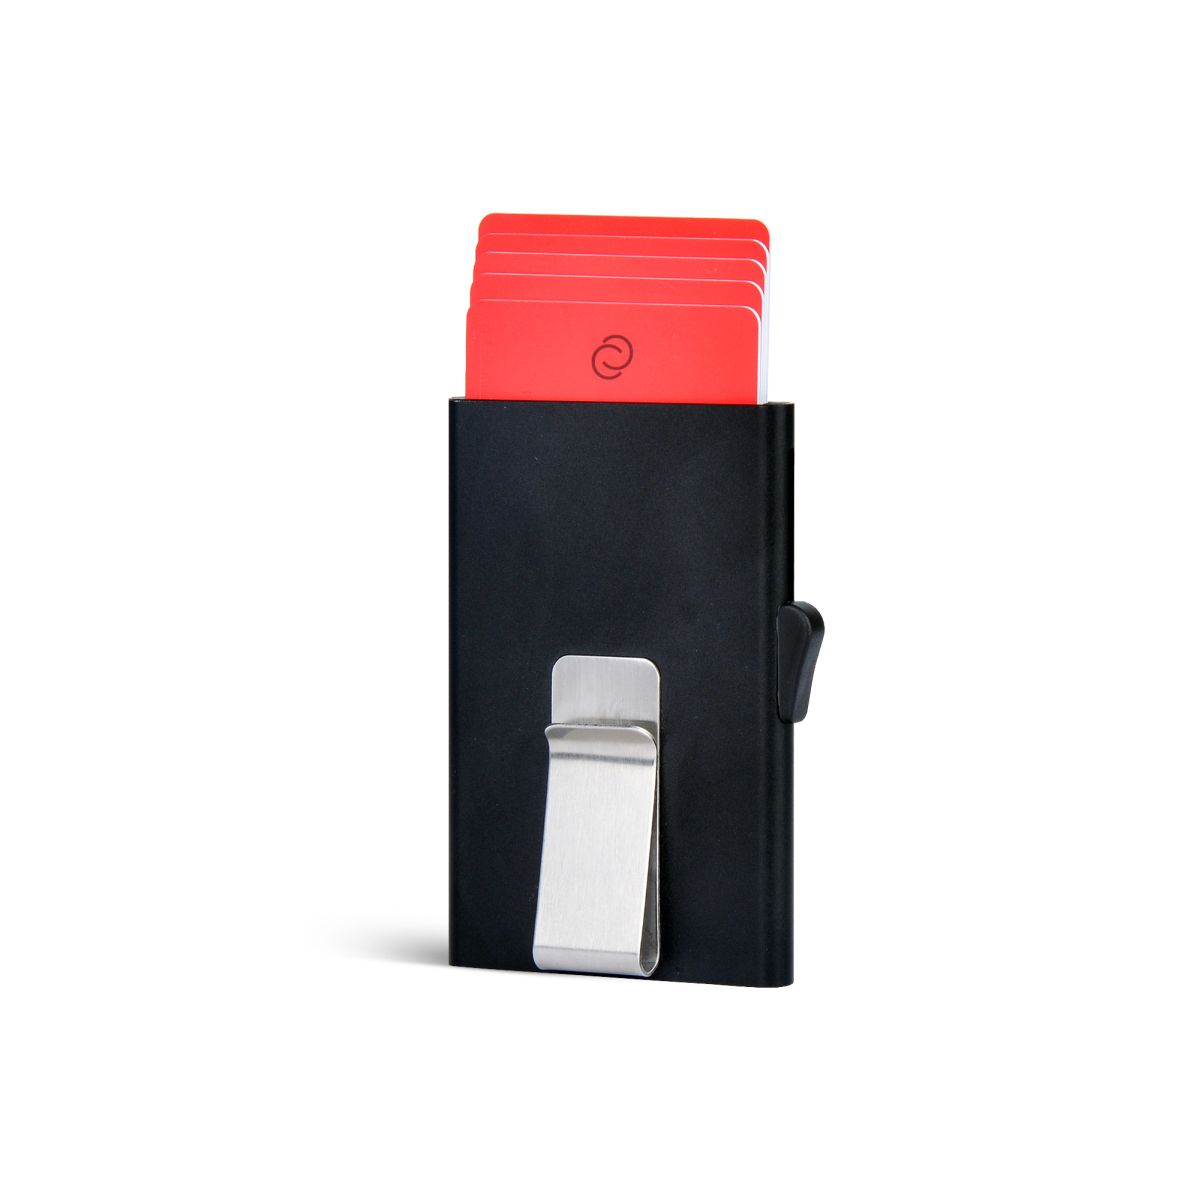 Slim Aluminum Card Holder with Money Clip - Black